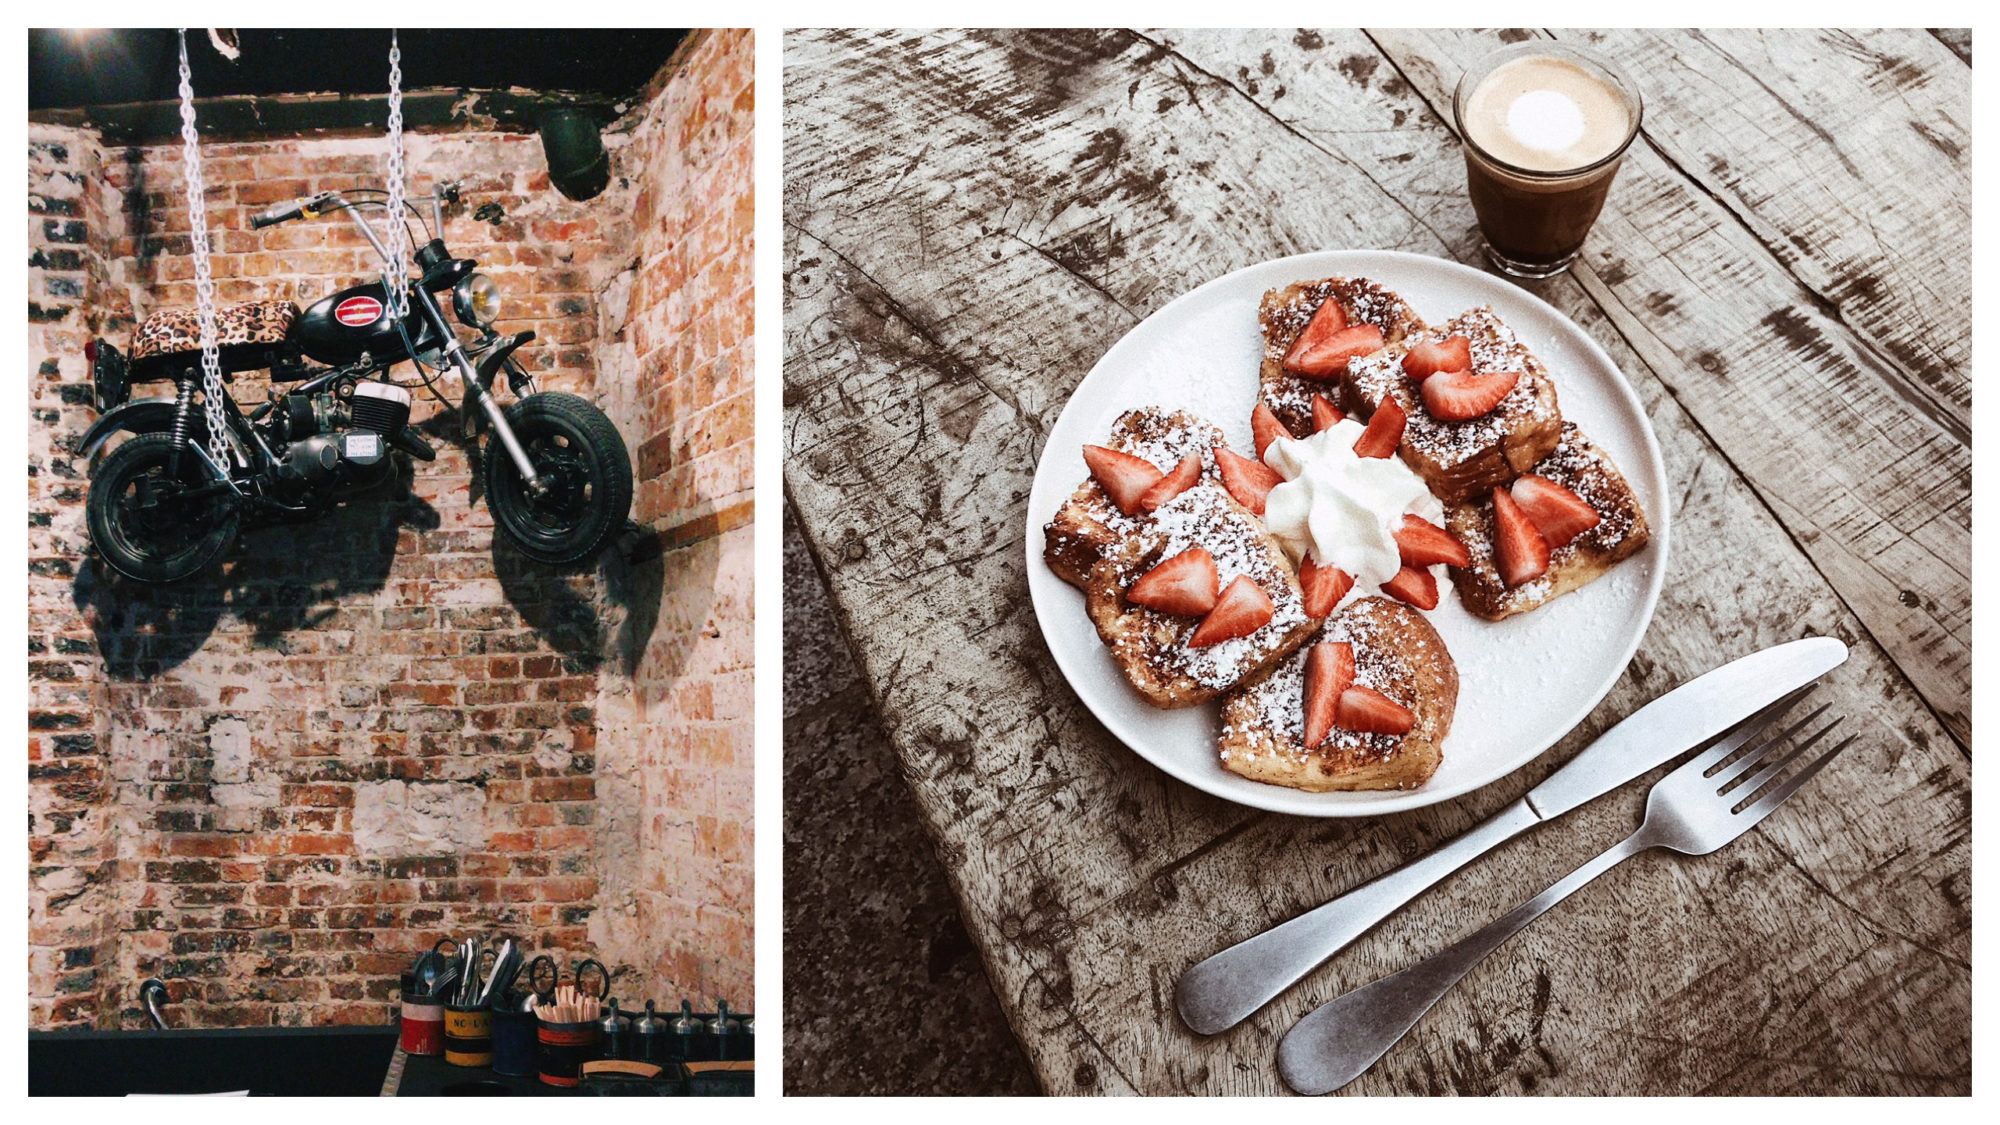 Motors coffee shop is a great place for co-working in Paris as the Californian-inspired décor makes for a refreshing change (left) and it also serves tasty fruit toasts (right).